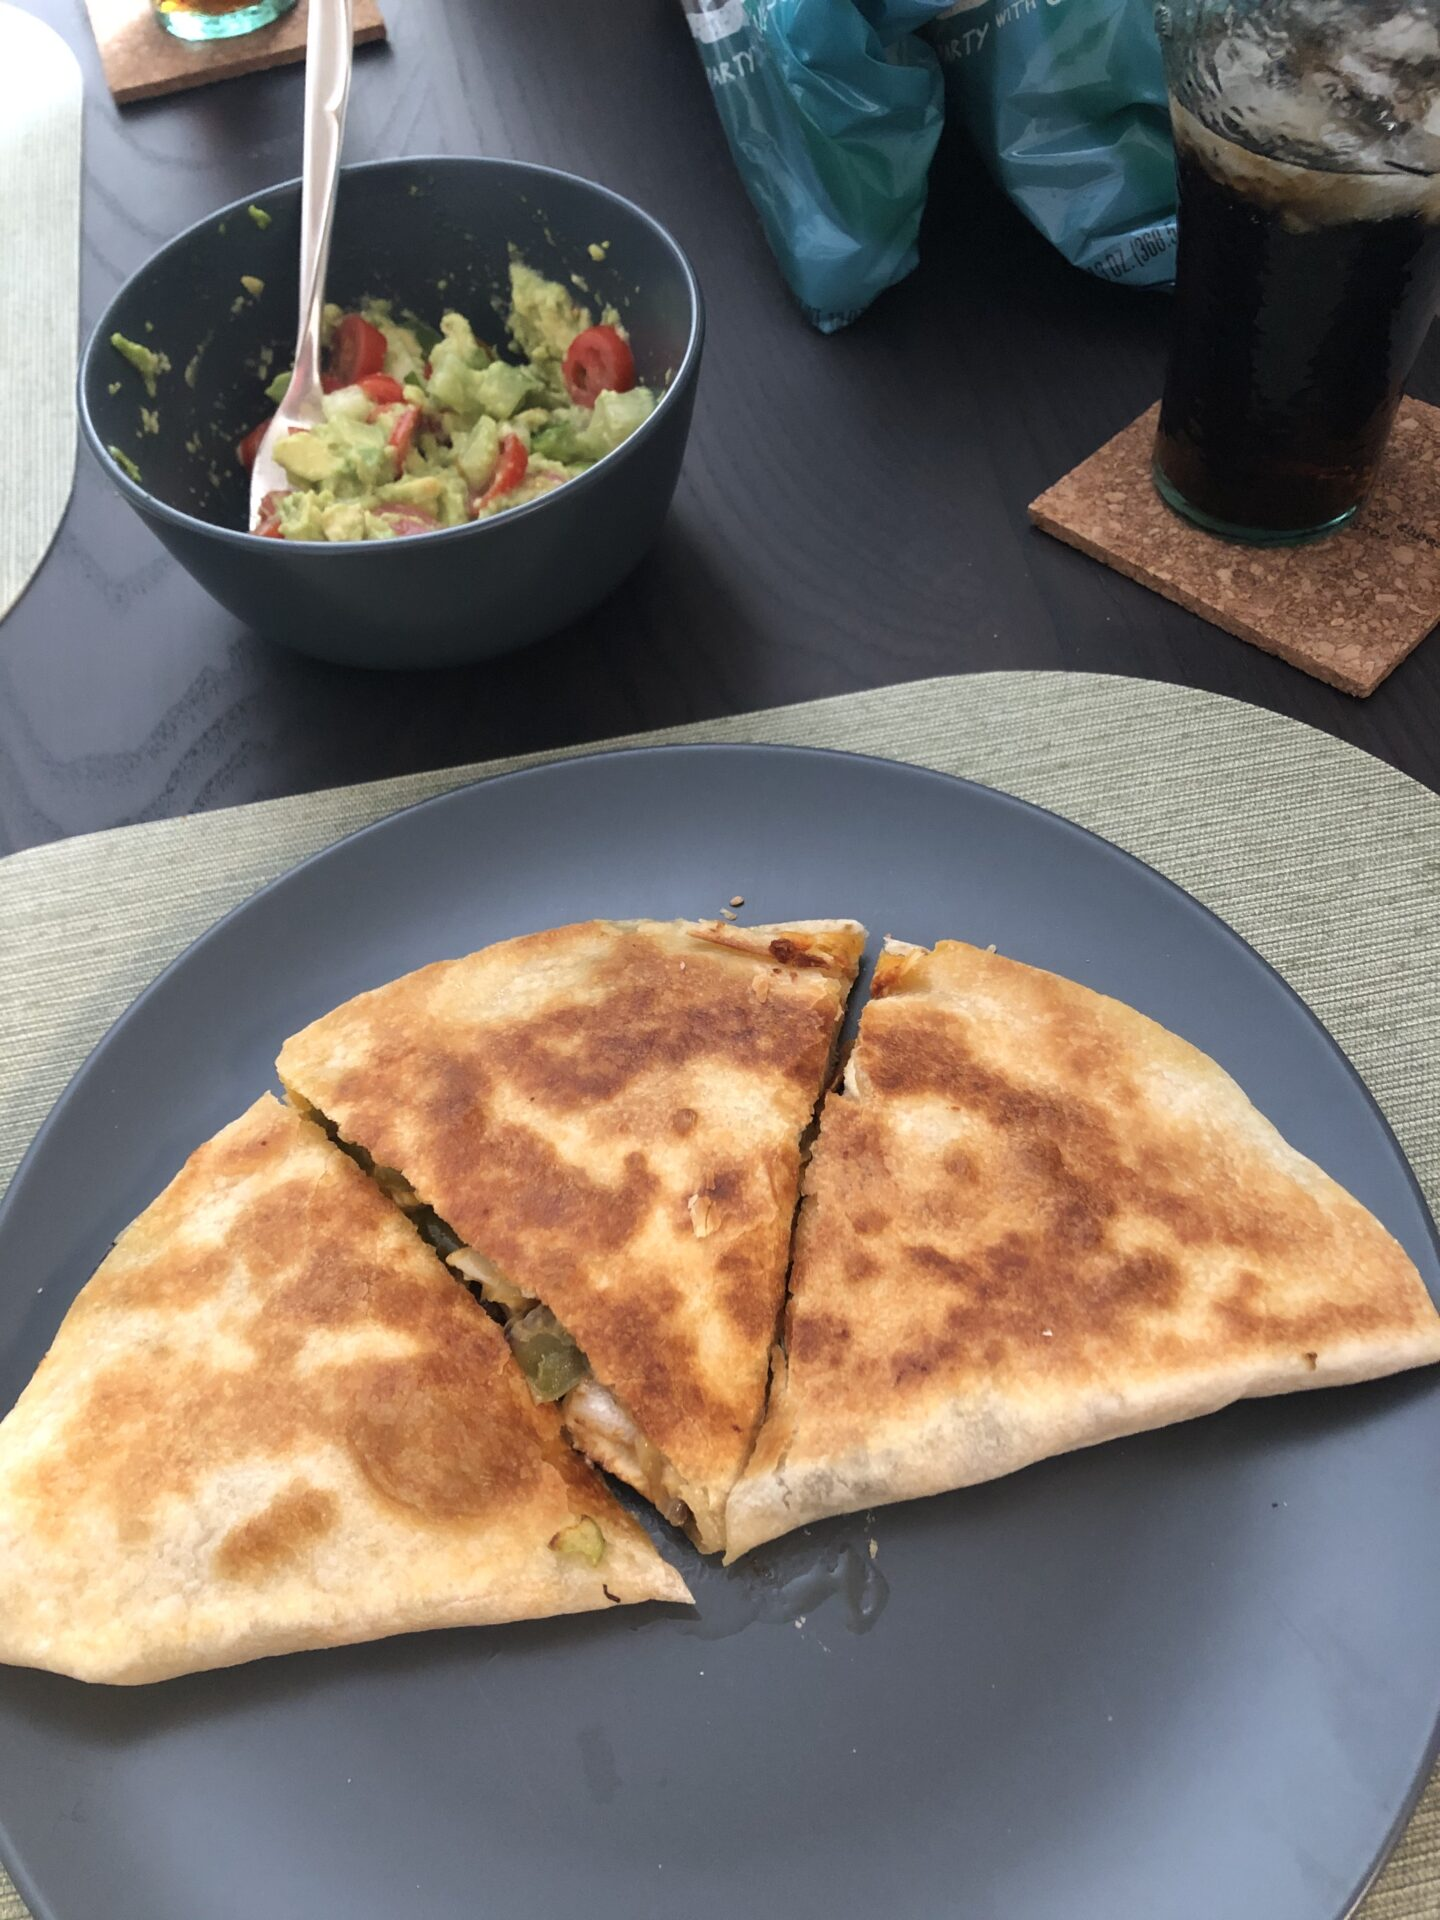 A quesadilla is delicious and so easy to whip up